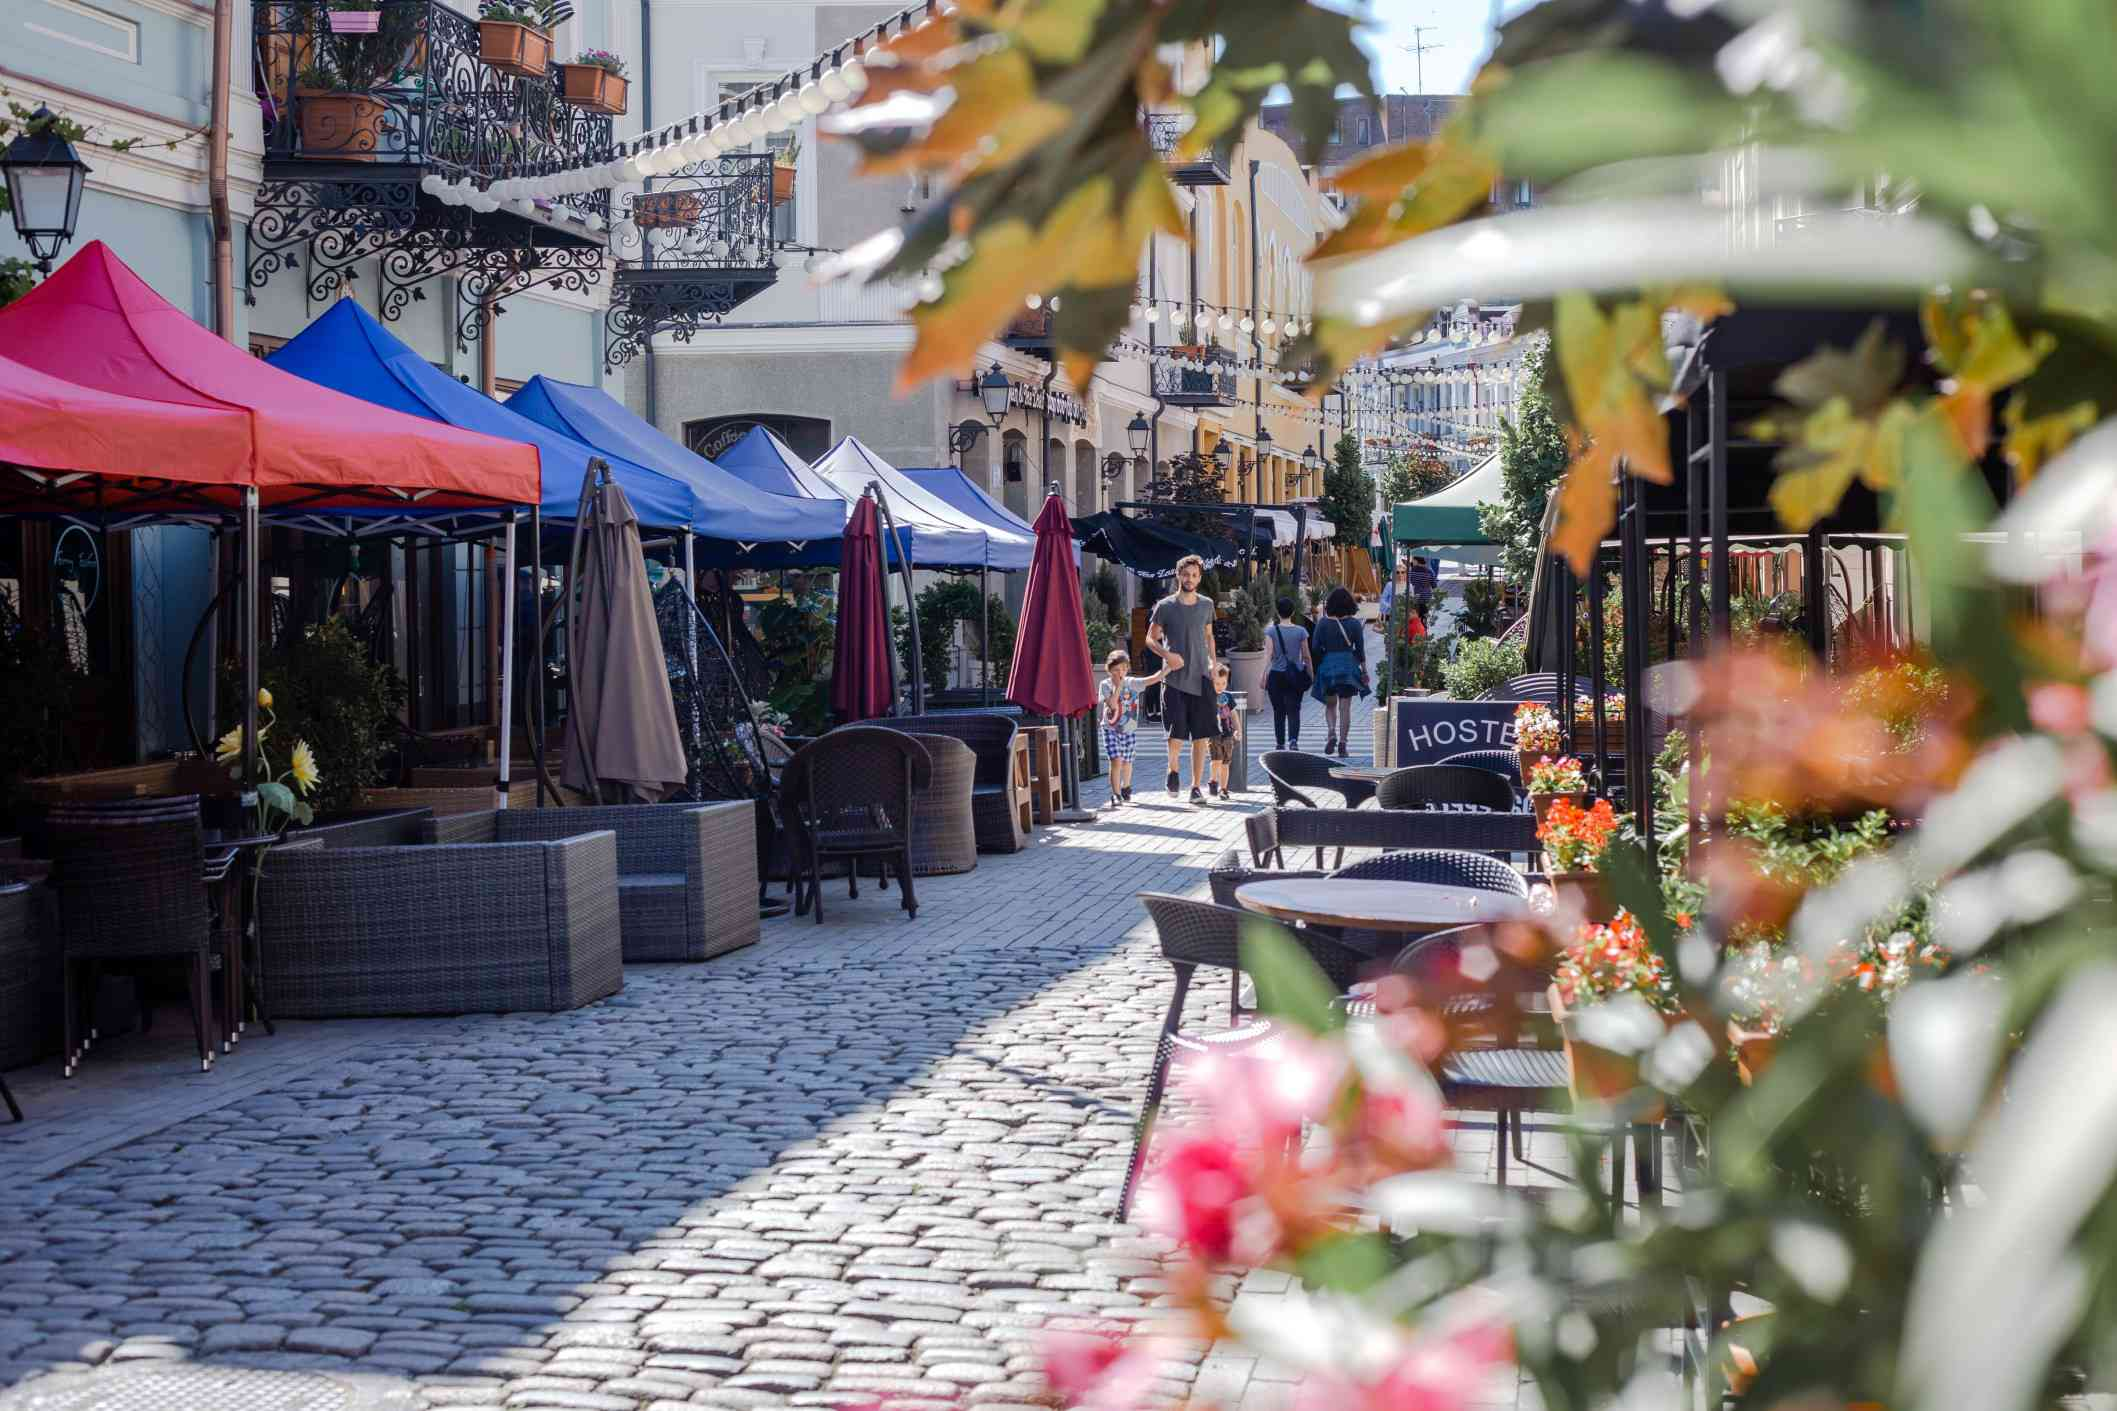 A cobble stone street in Tbilisi lined with wine cafes